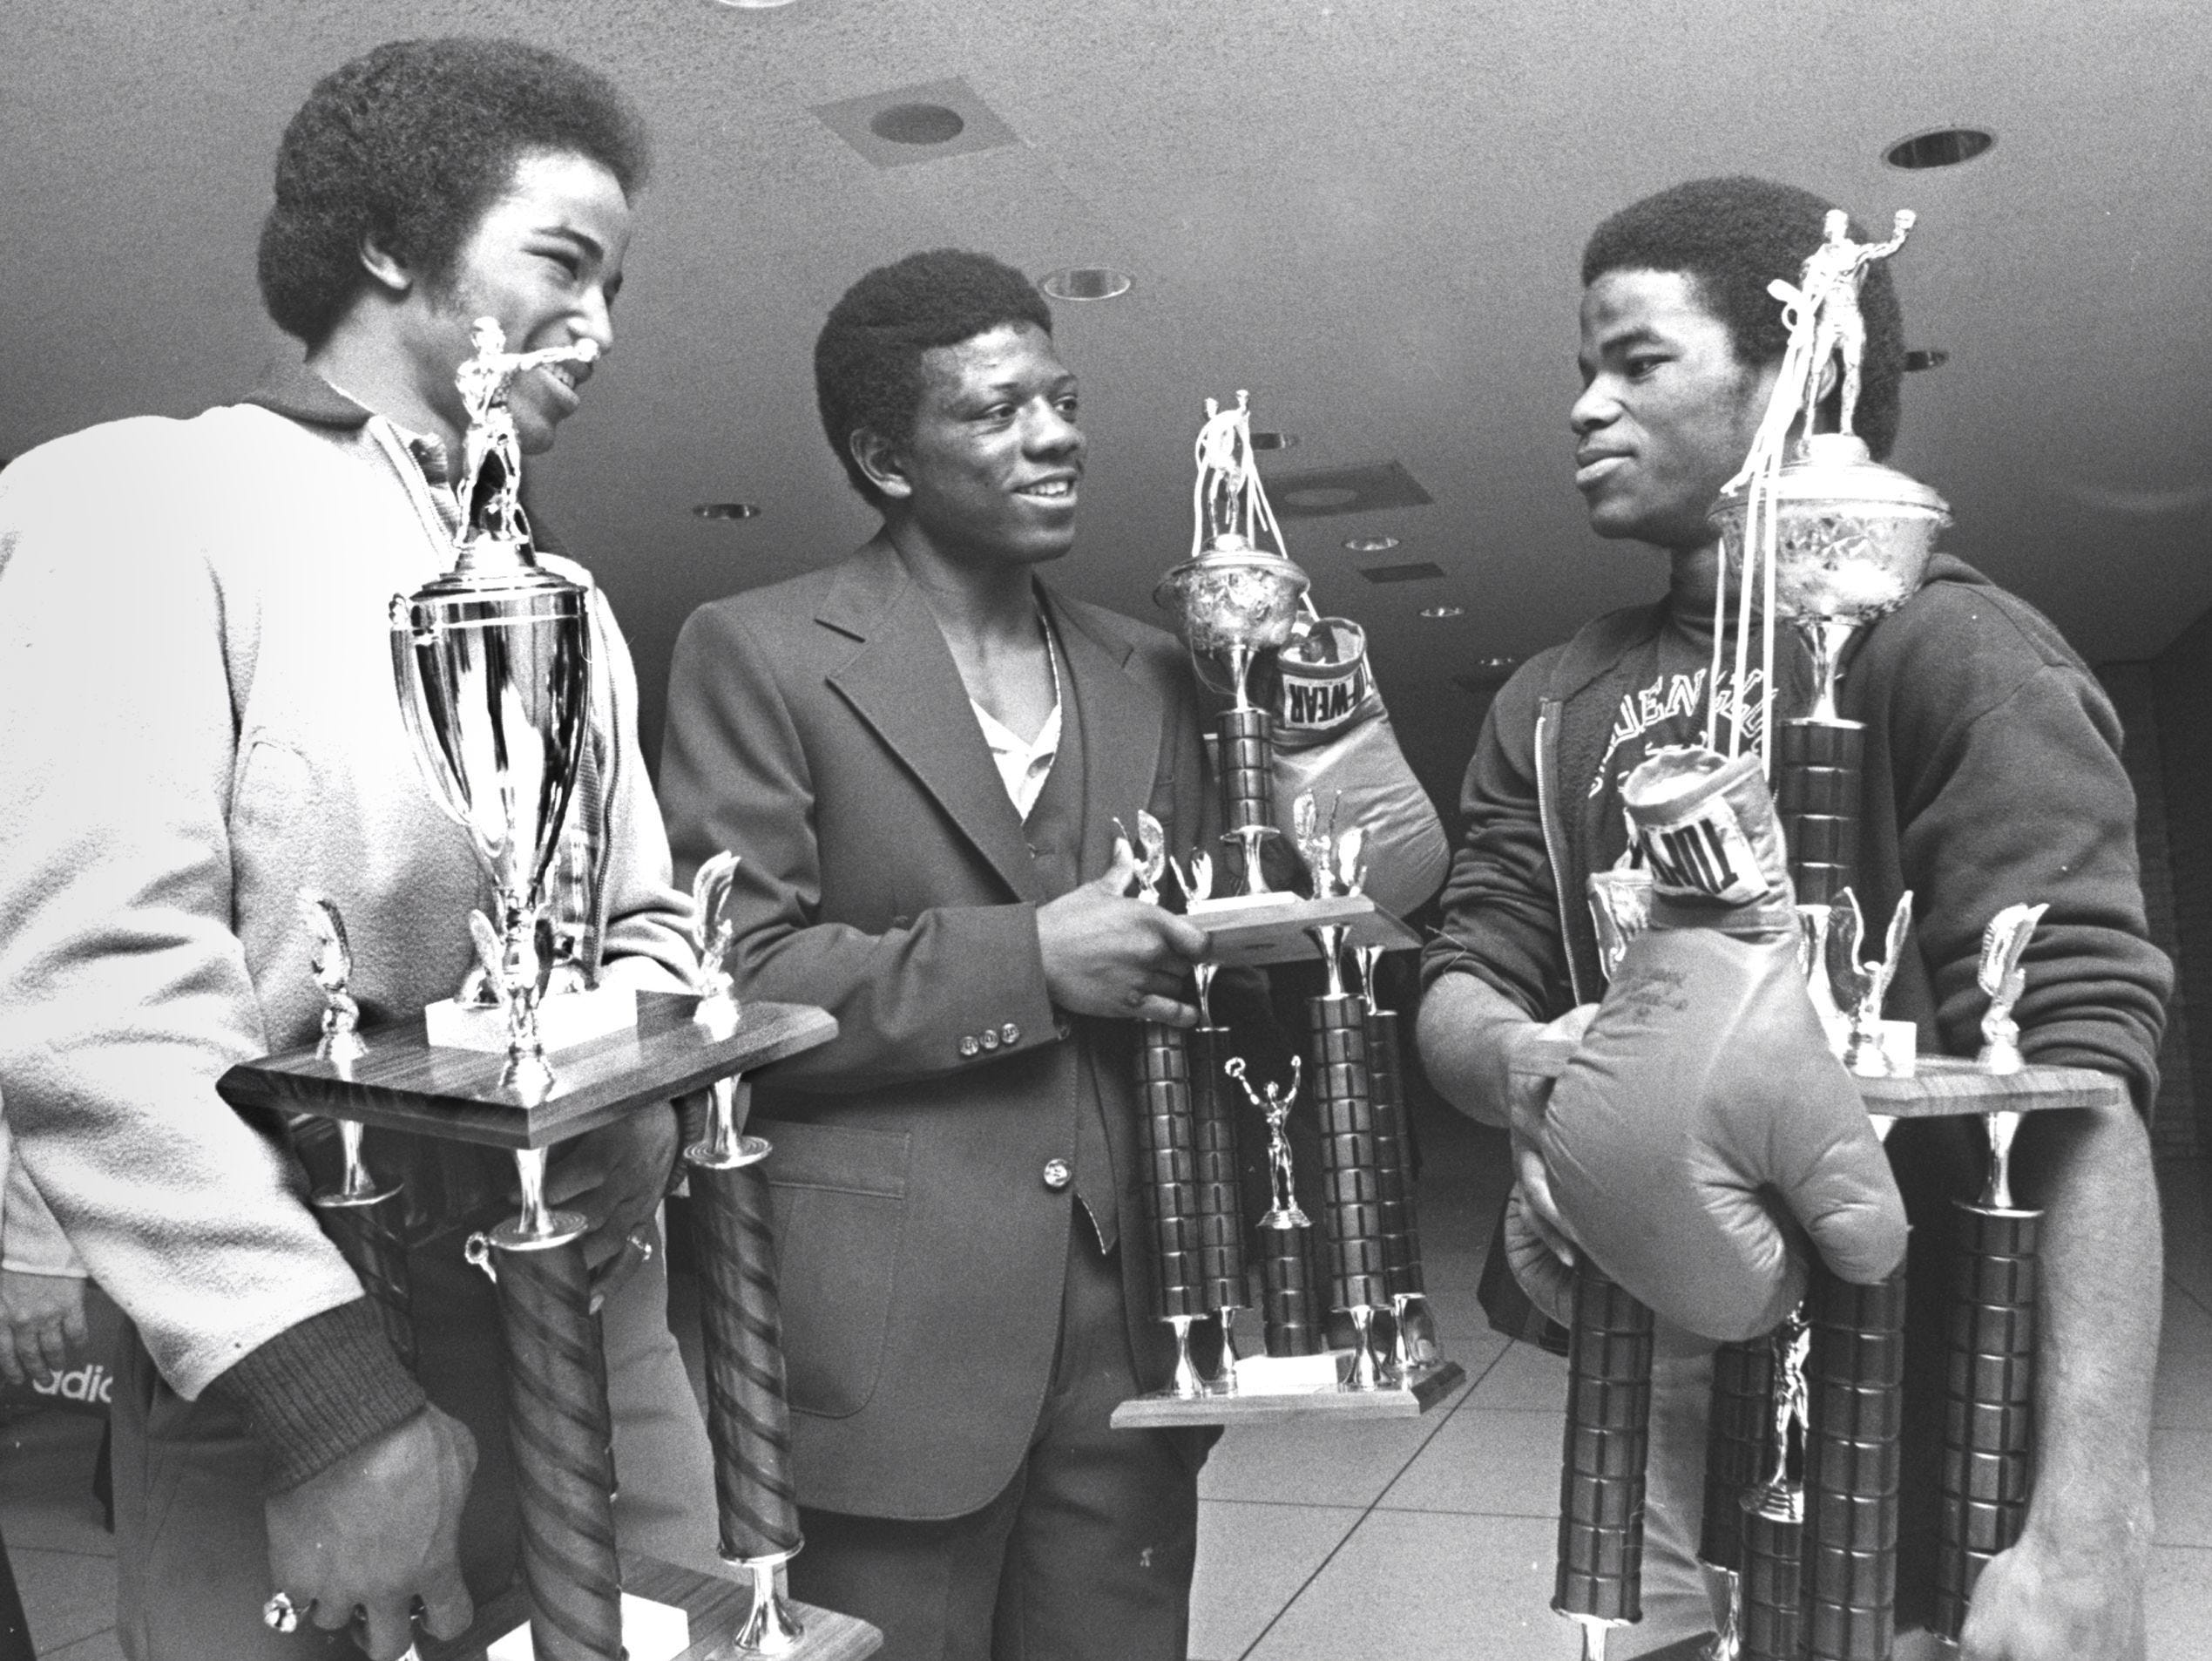 March 26, 1978 - Rickie Beard (left), Donald Bowers (center) and Jackie Beard (right) strolled through Memphis International Airport on March 26, 1978, with hardware they collected at the National Golden Gloves Tournament in Albuquerque, N.M. Bowers and Jackie Beard whipped their way through preliminary bouts and came away with national titles. Rickie Beard won a runnerup trophy. All three are from Jackson, Tenn.